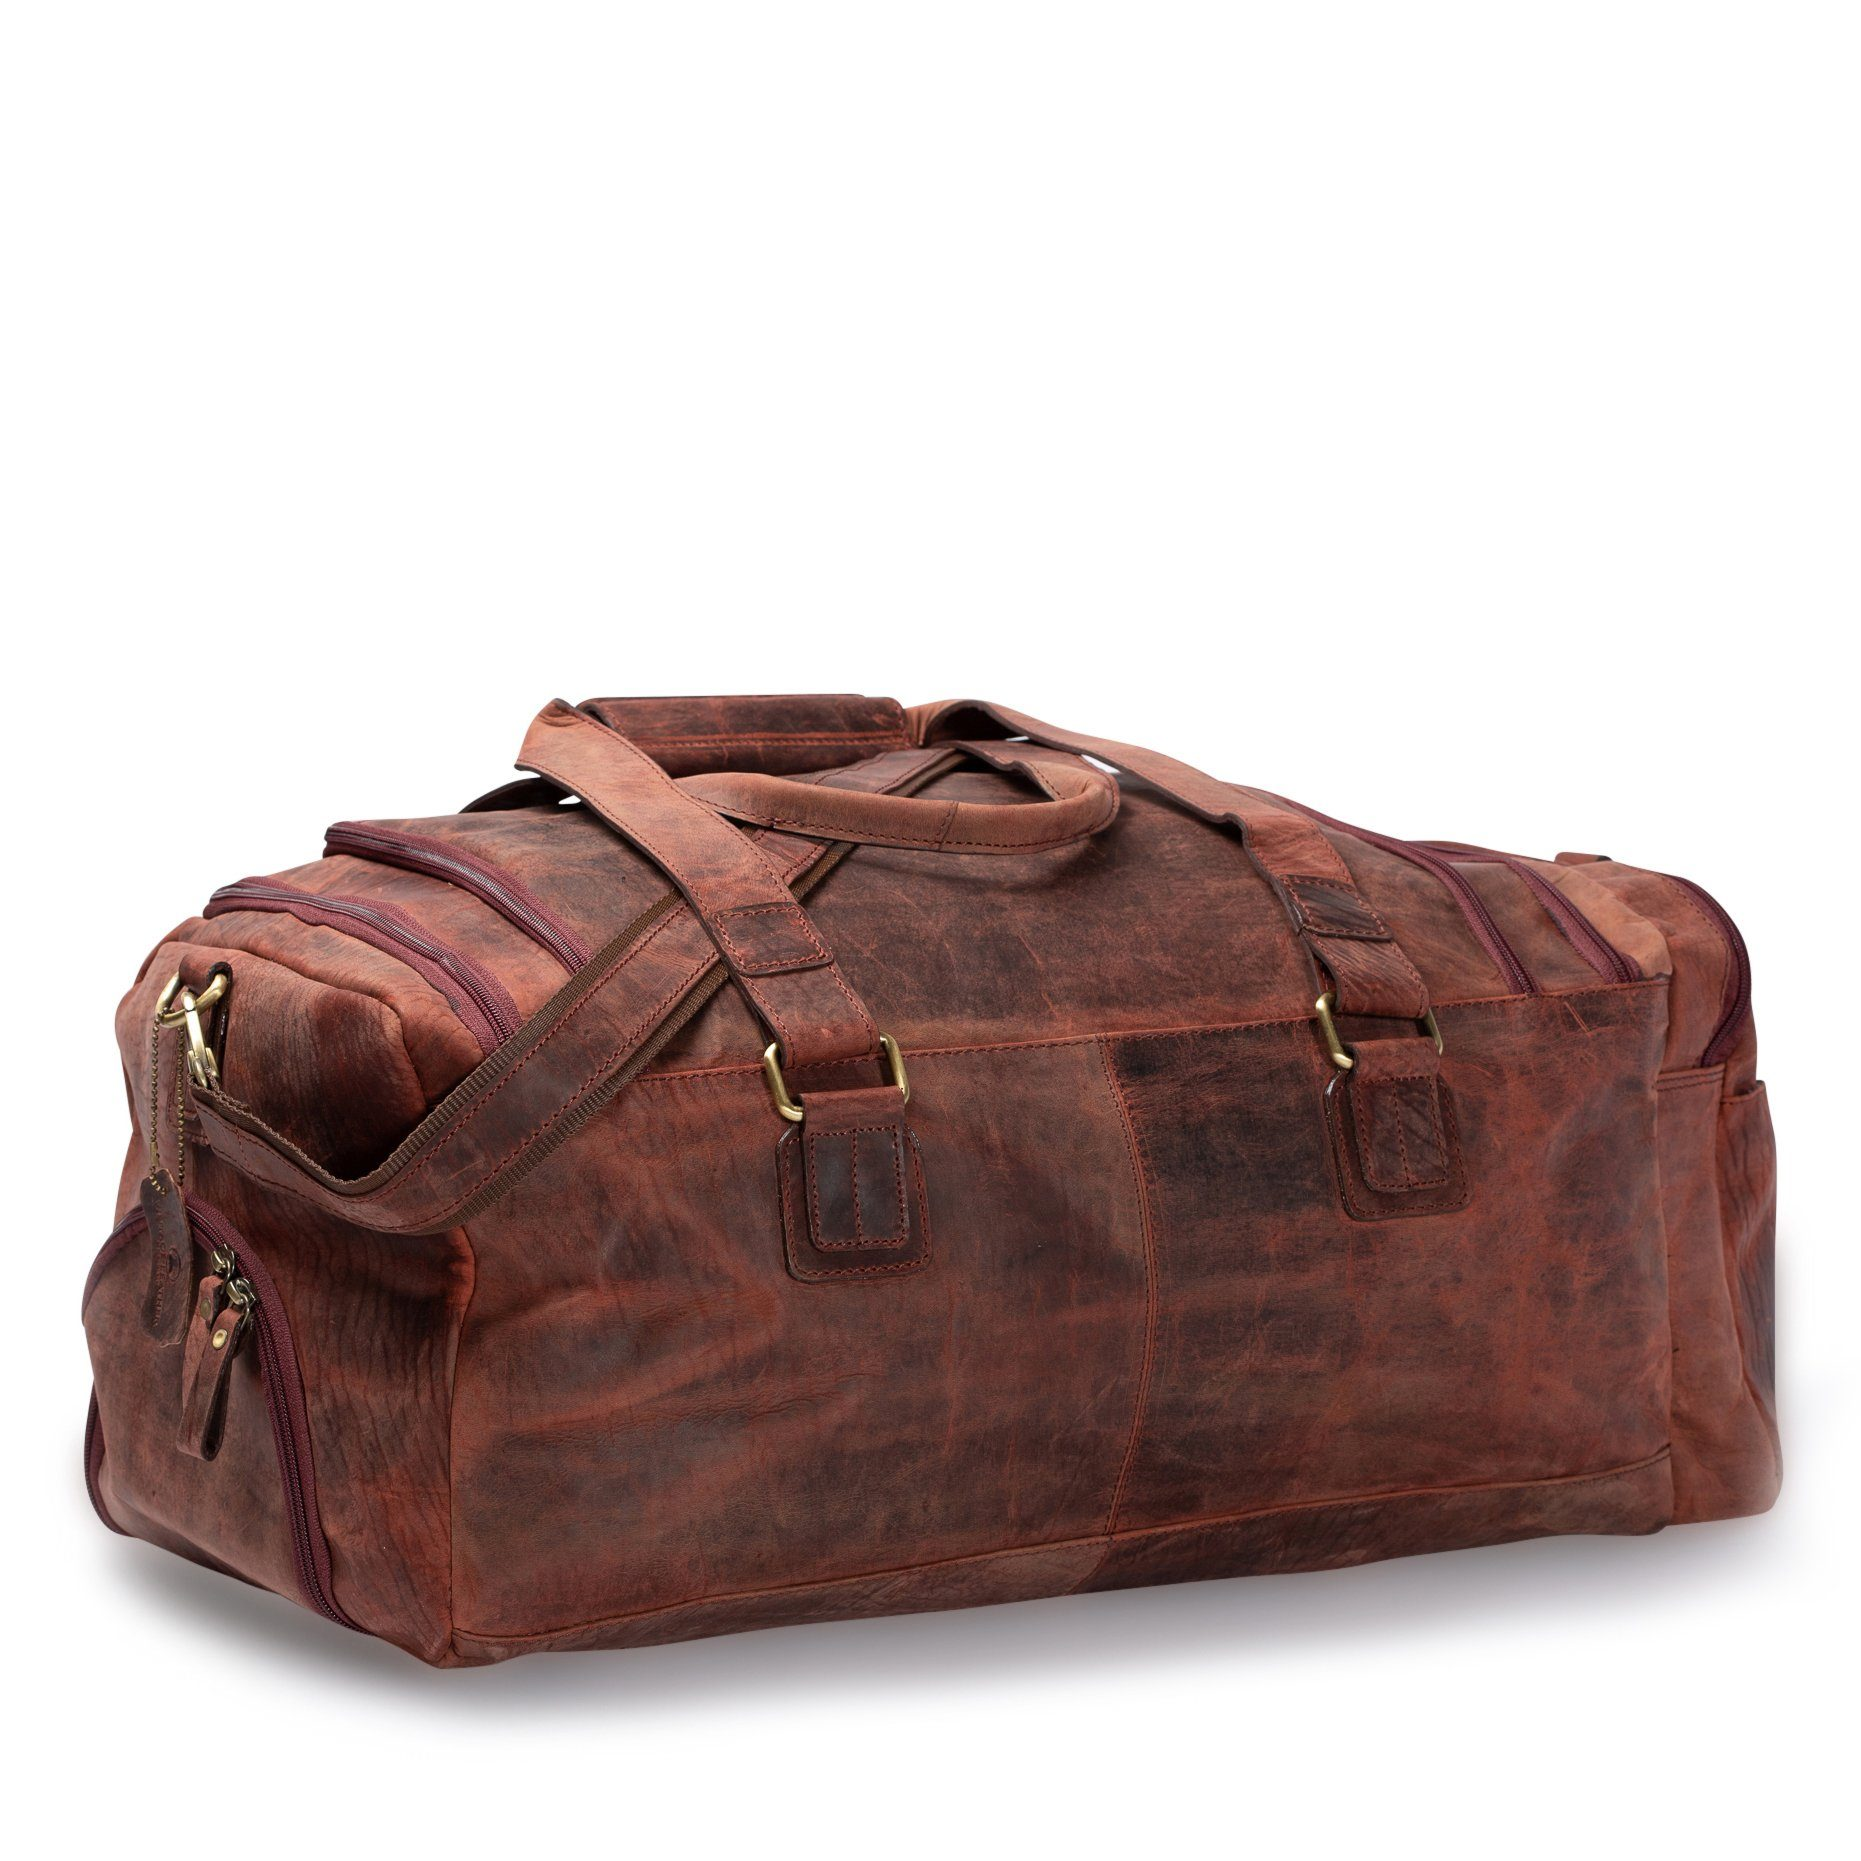 duffle bag_Vintage Leather Sydney